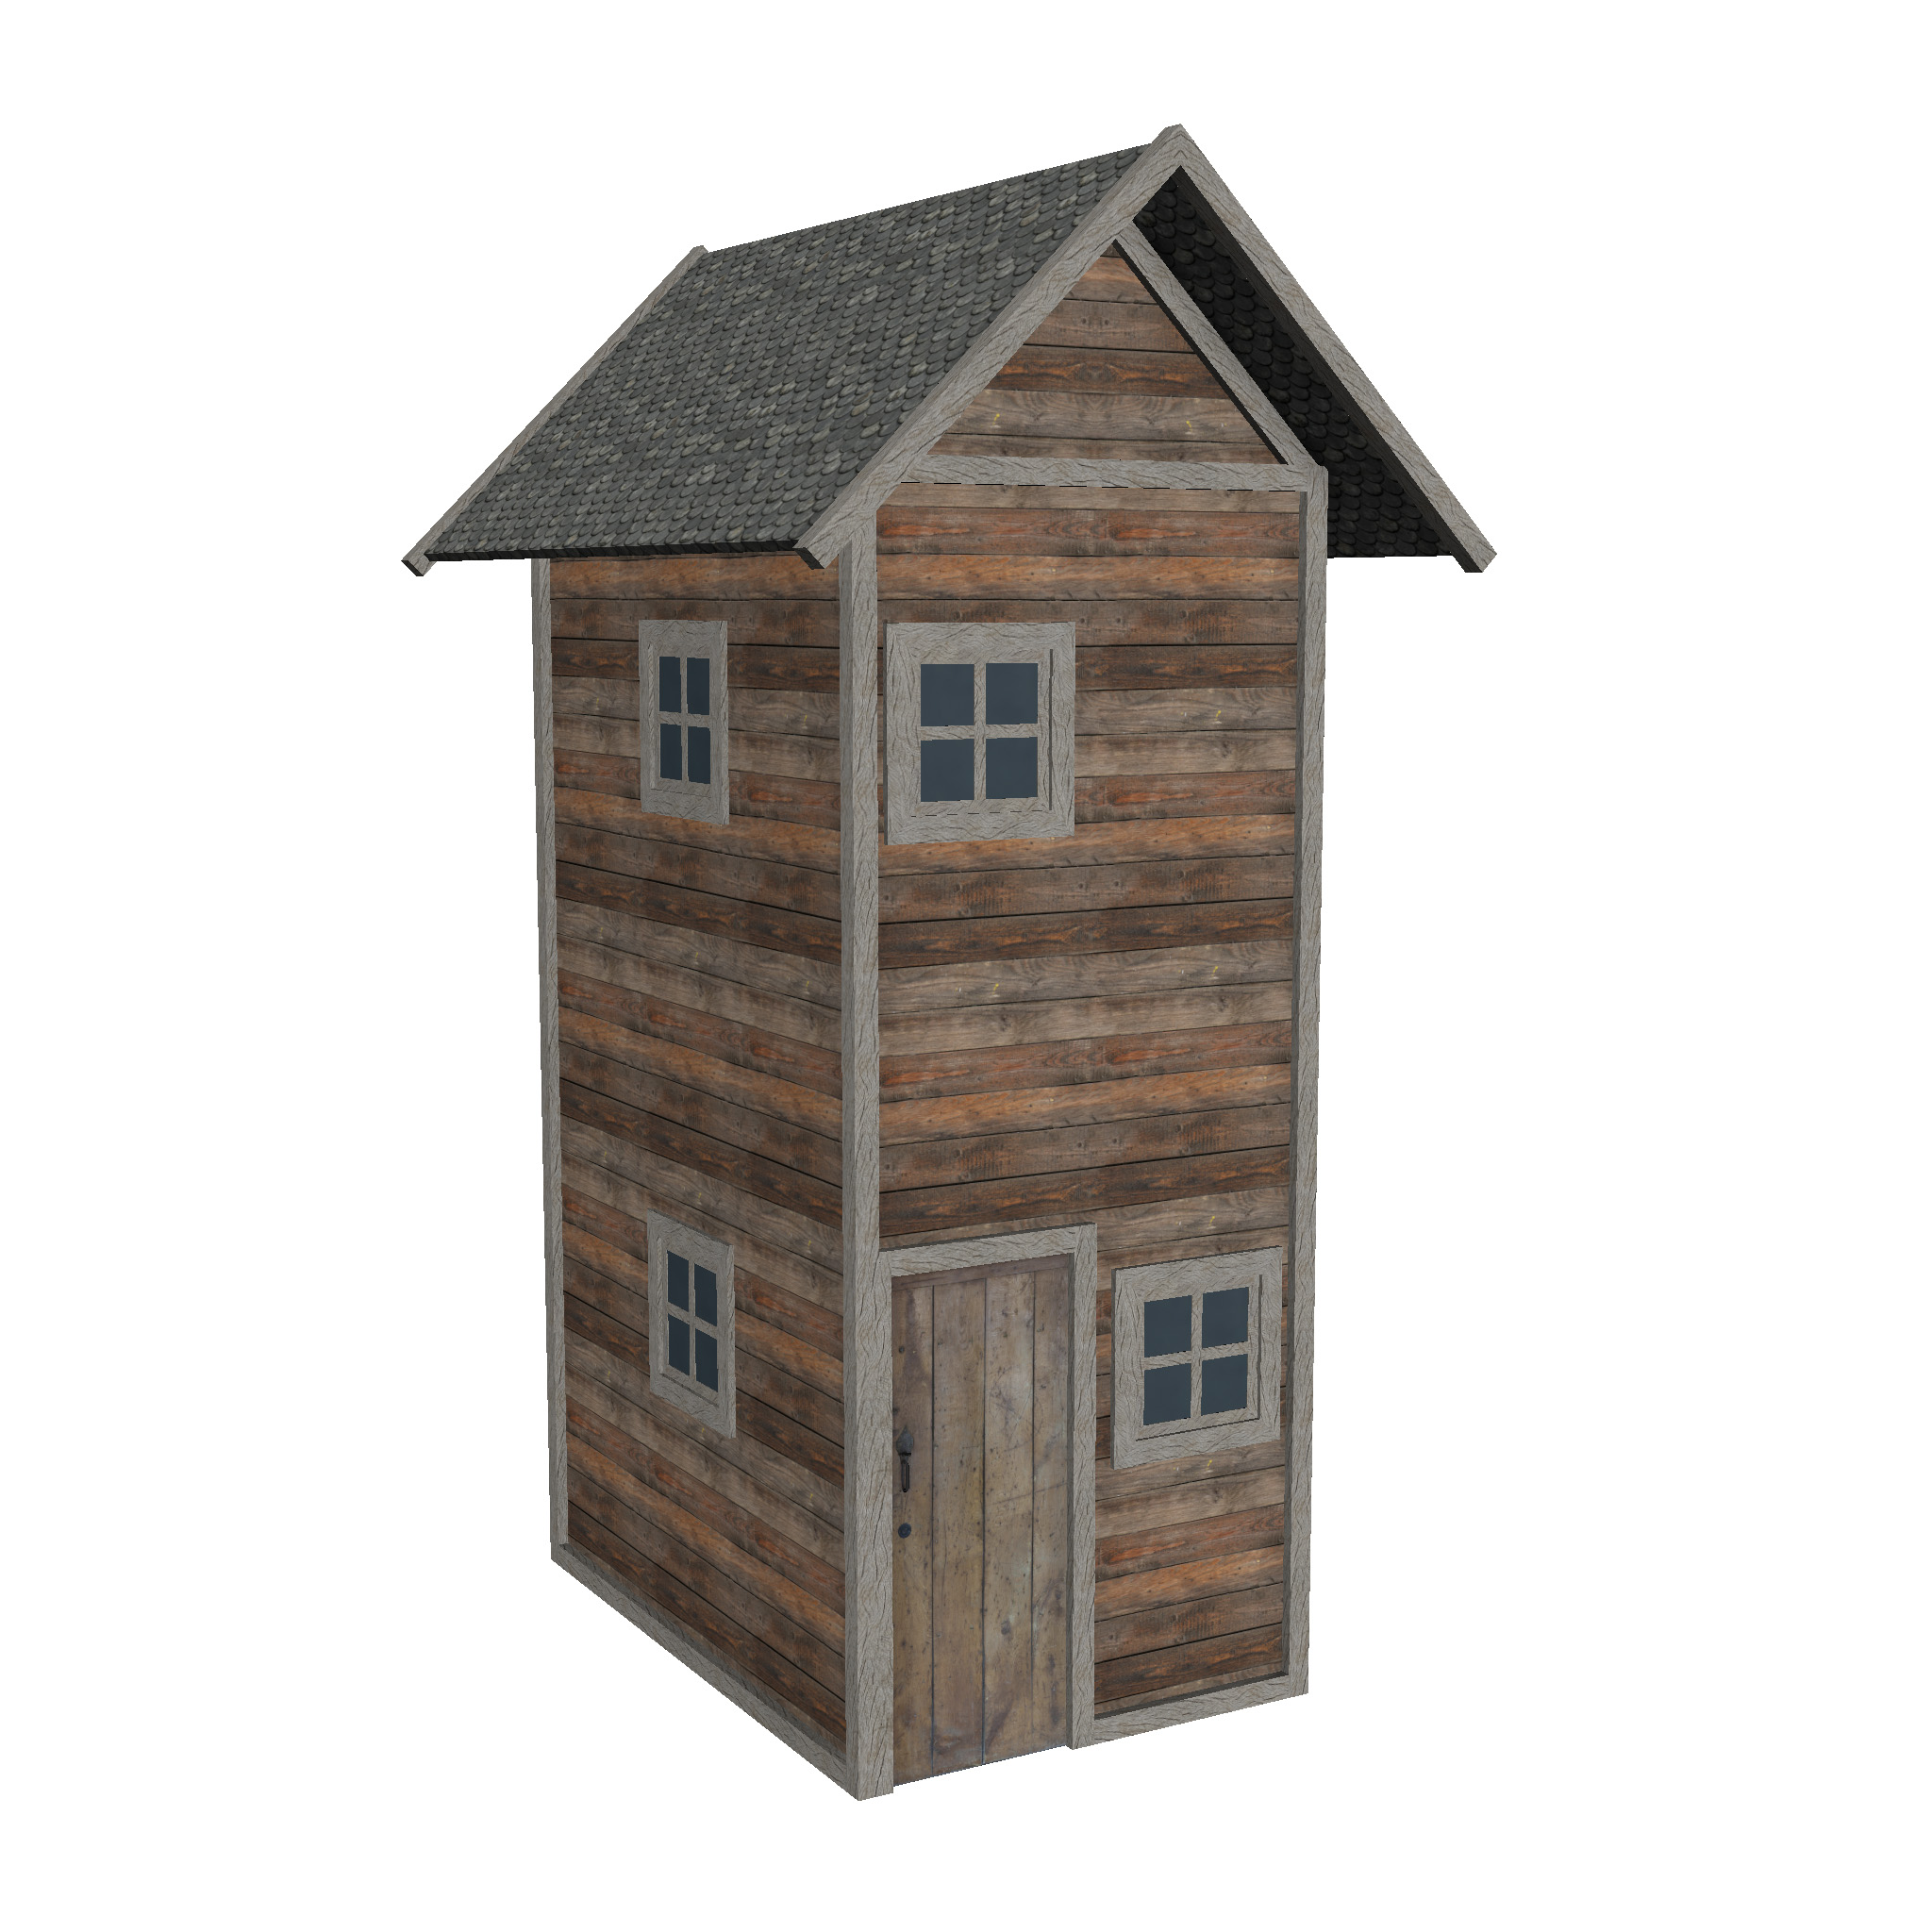 modular wood house set 3d model fbx ma mb 271439